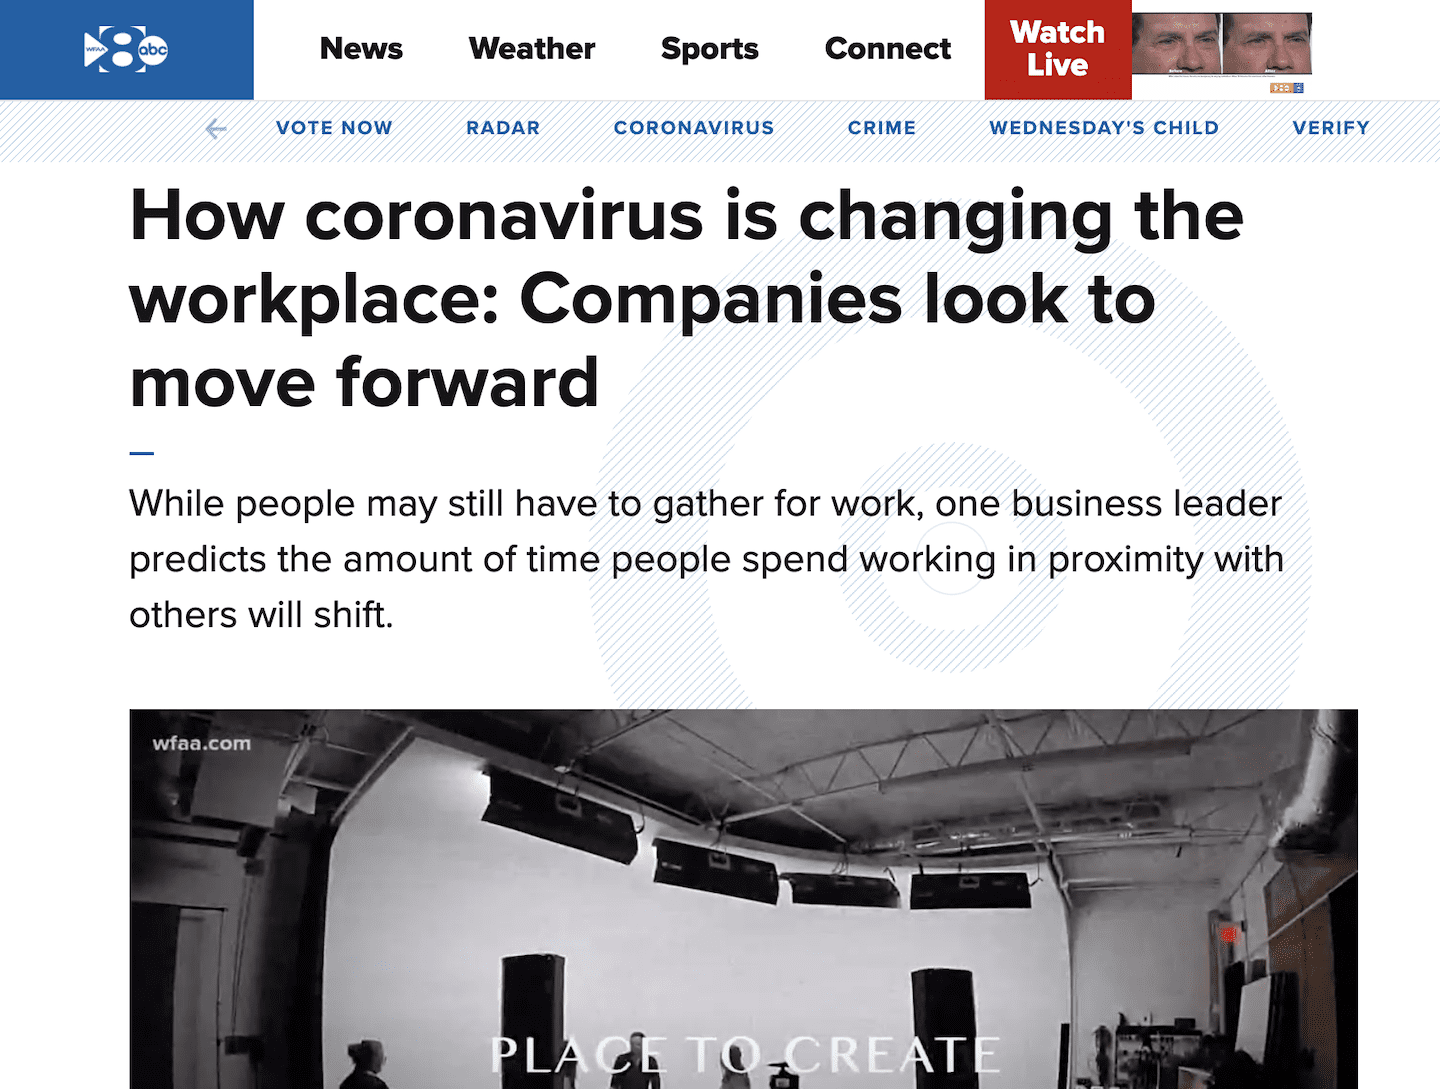 How coronavirus is changing the workplace | WFAA